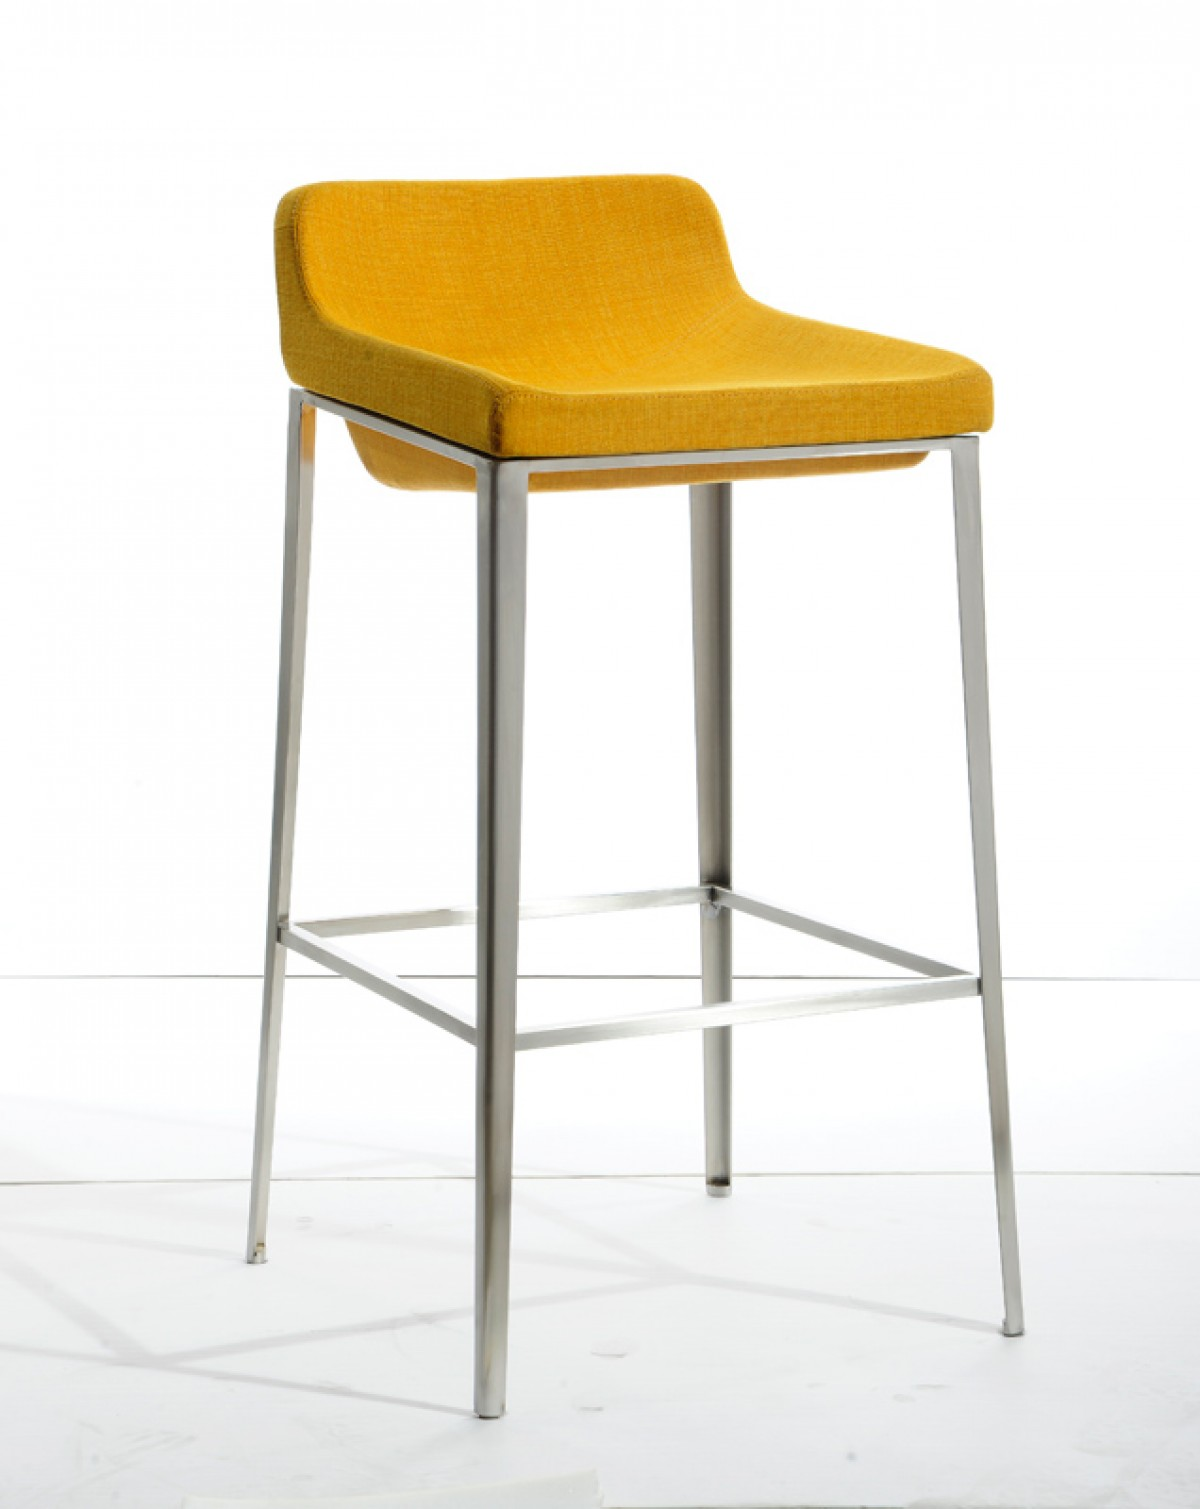 Bright Colored Bar Stools Modrest Adhil Modern Yellow Fabric Bar Stool